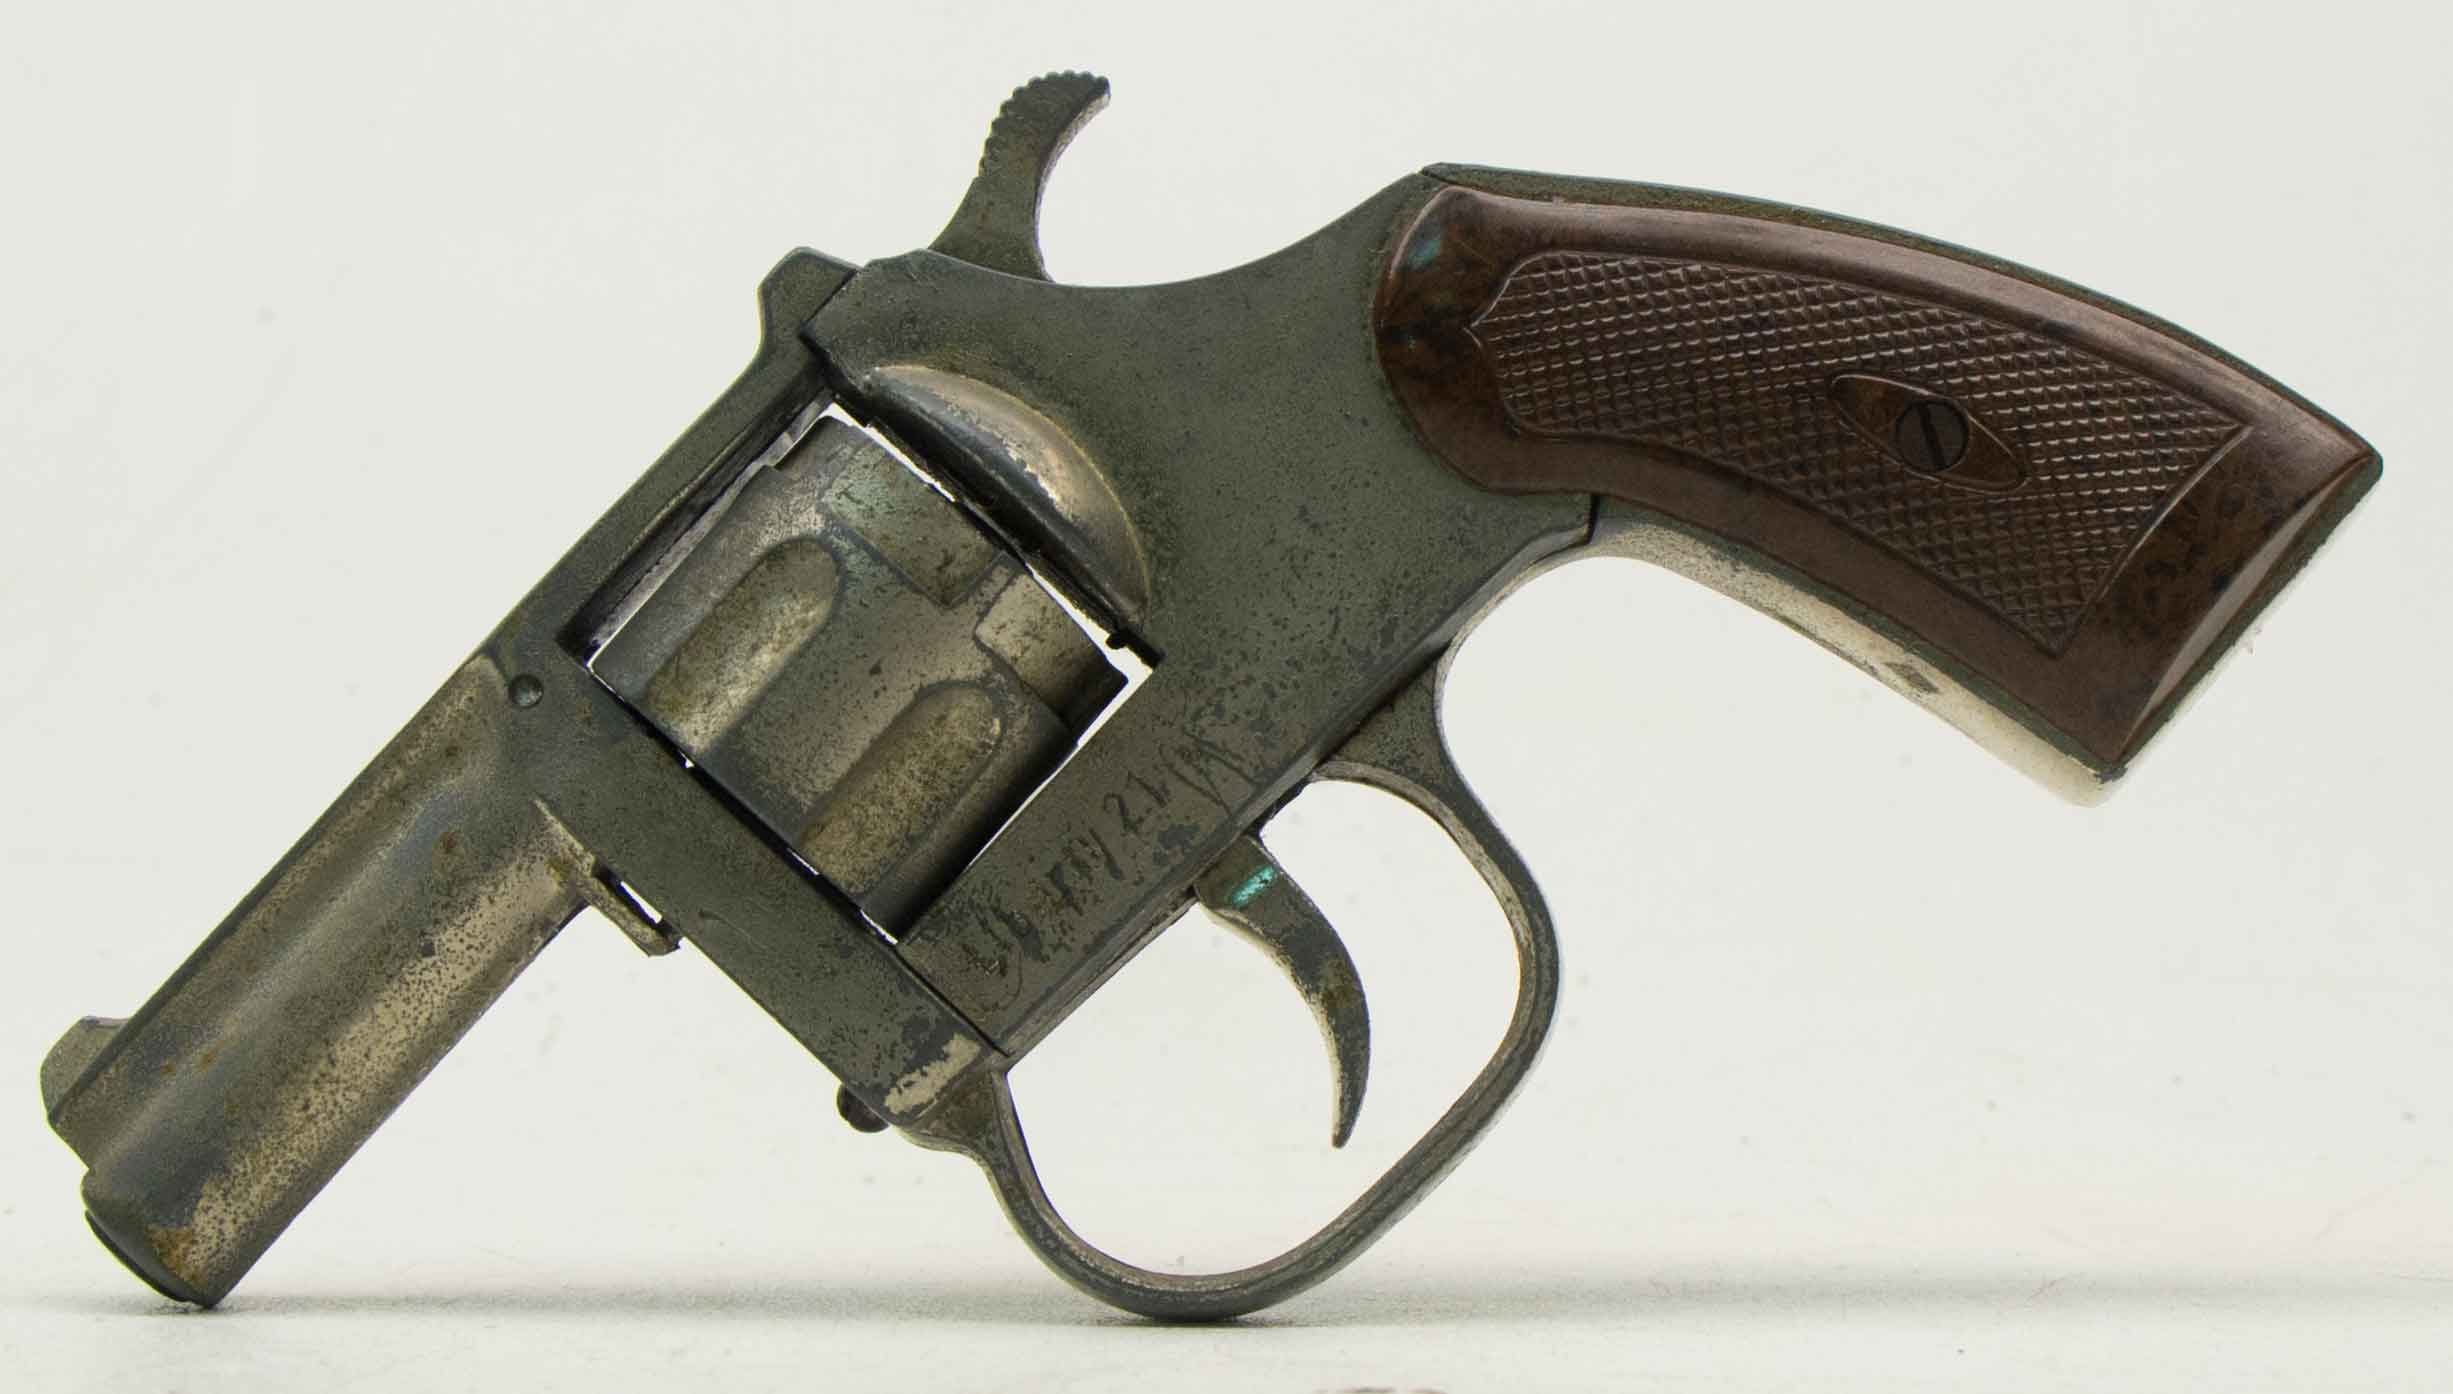 HERBERT SCHMIDT LIBERTY 21 REVOLVER (Auction ID: 10507701, End Time